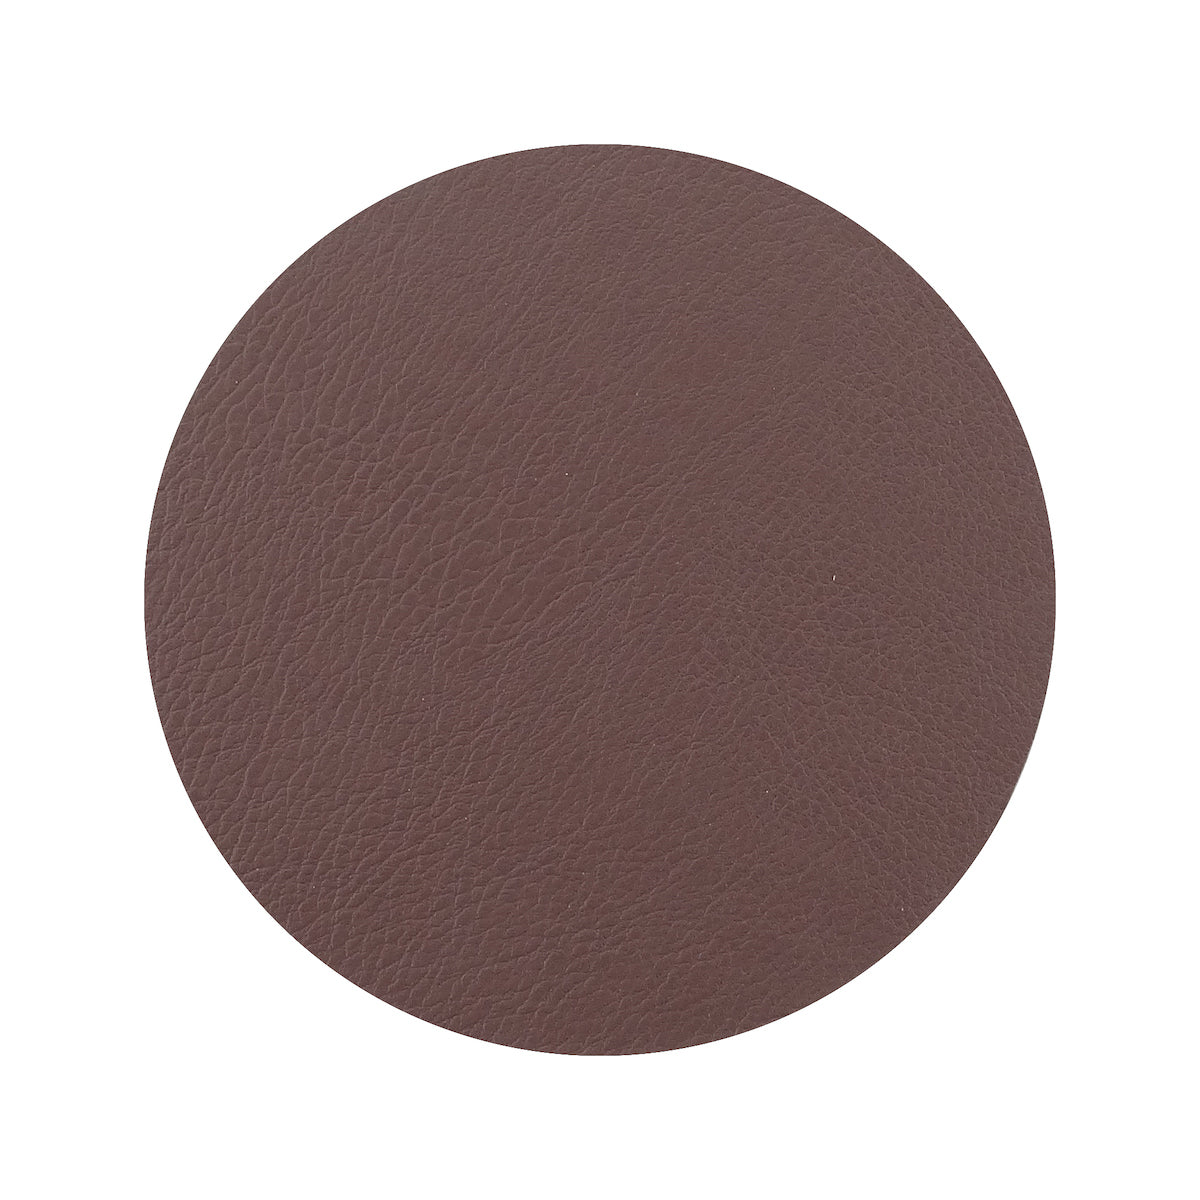 Togo Faux Leather Coaster Set | Brown